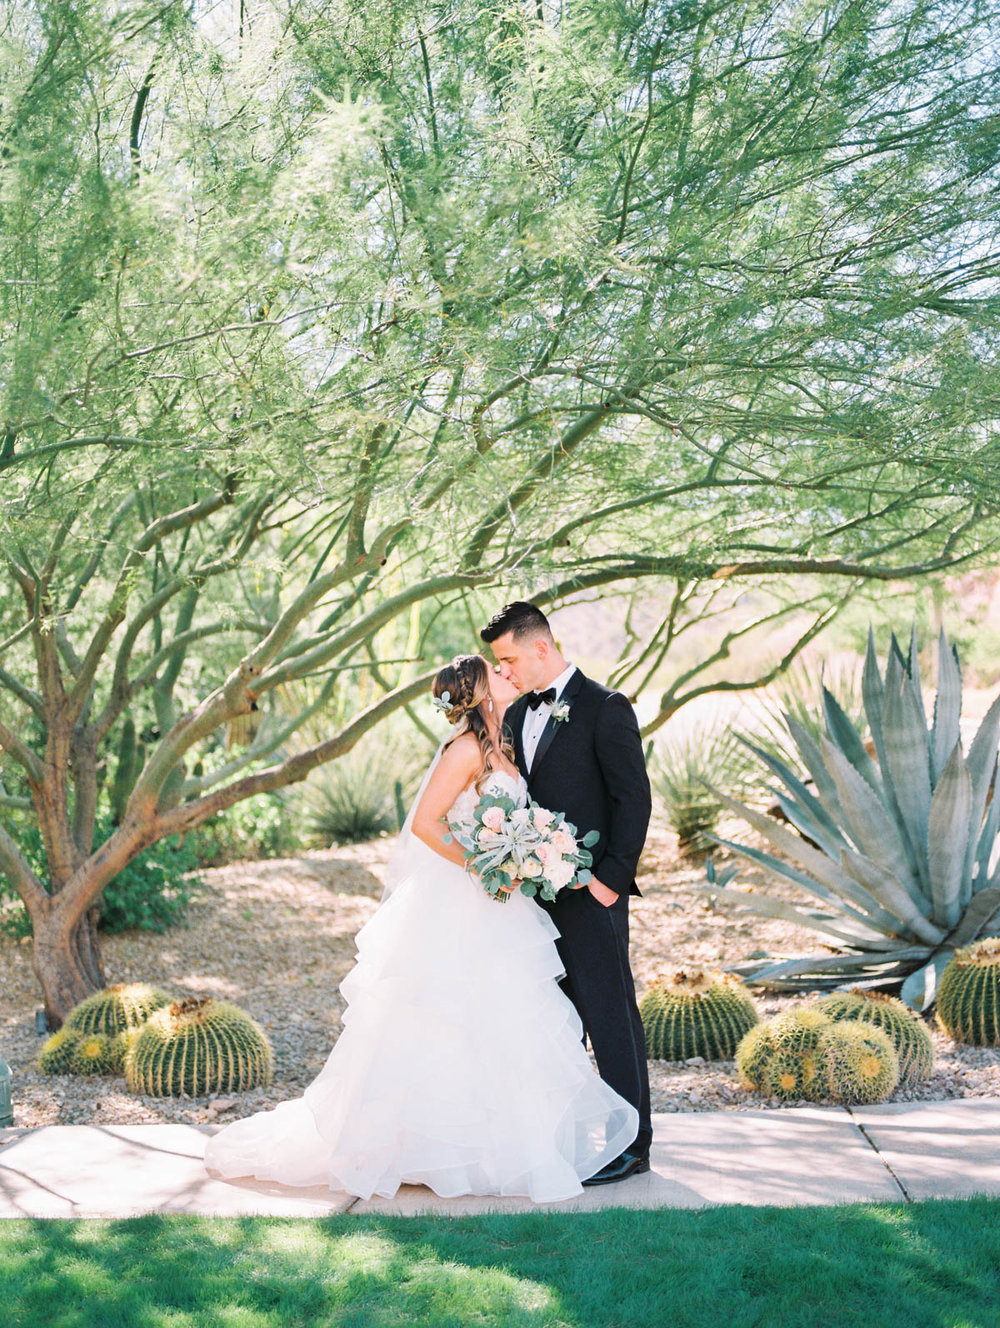 Bride & groom at JW Marriott Starr Pass captured by Tucson Wedding Photographers Betsy & John